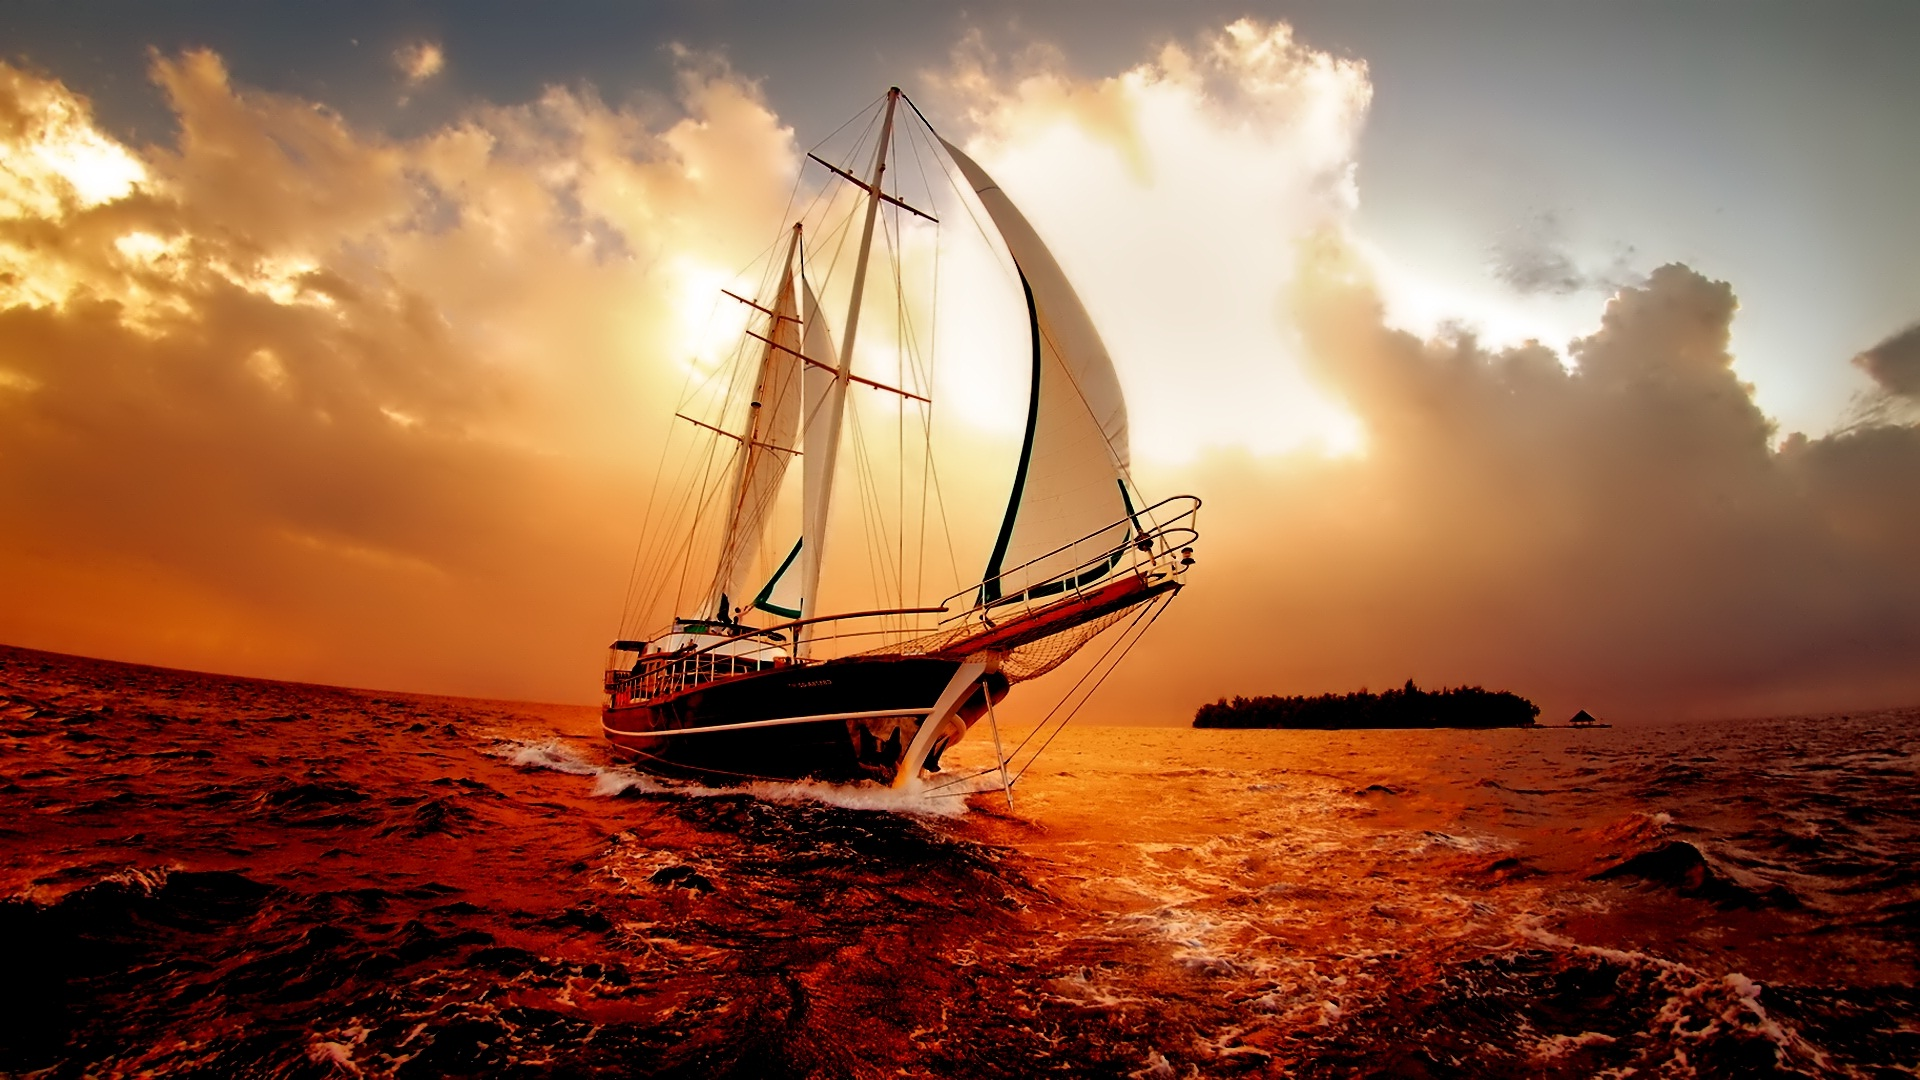 Amazing-boat-in-sea-marvelous-1920%C3%971080-wallpaper-wp3602415